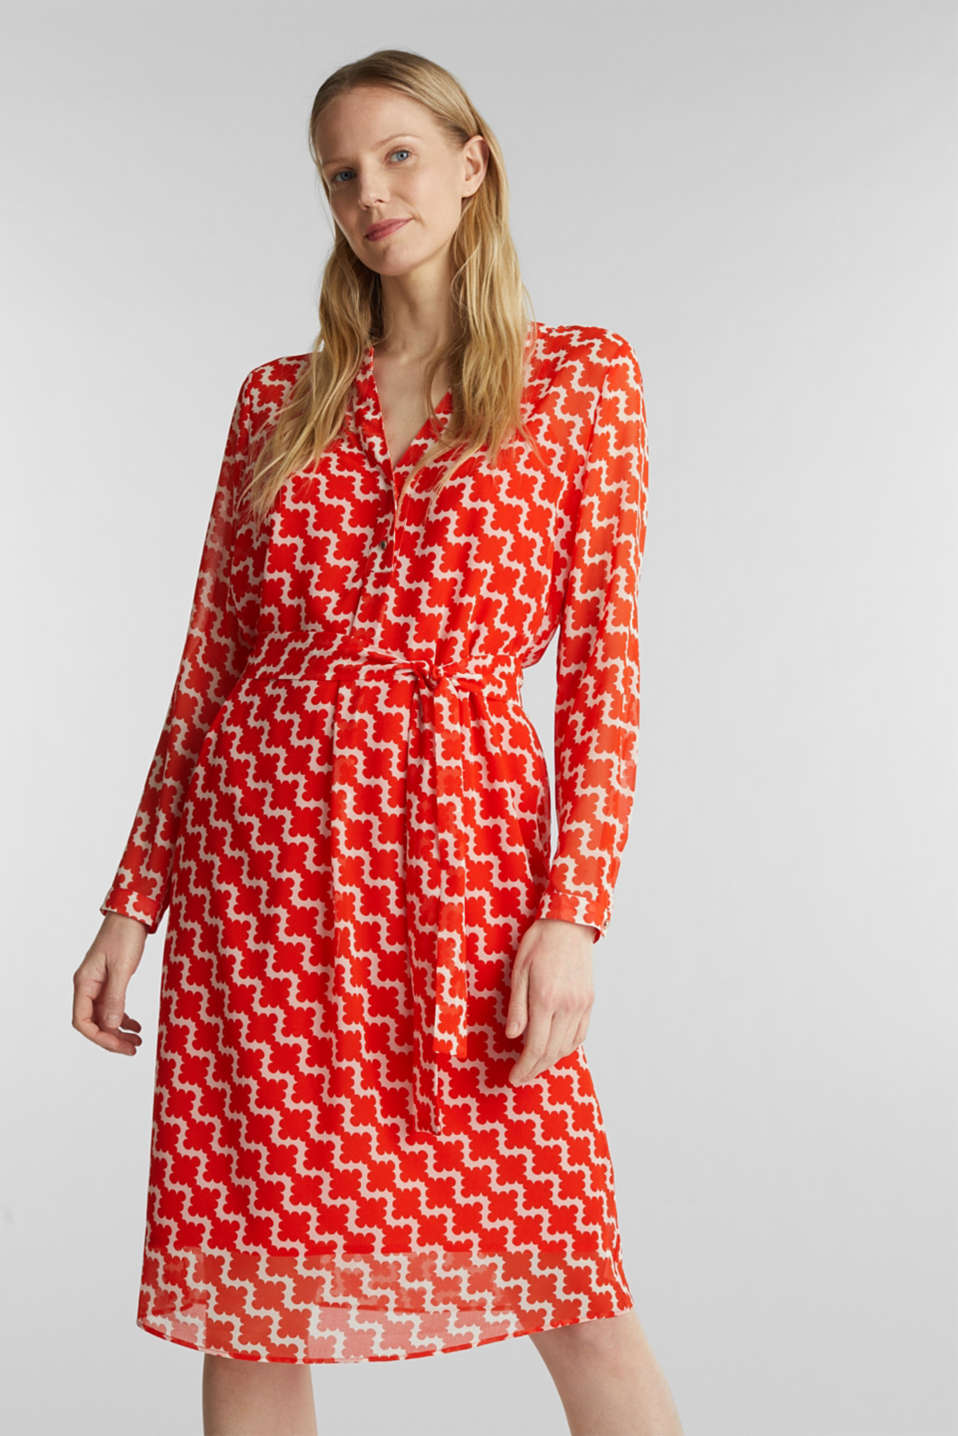 Esprit - Printed chiffon shirt dress